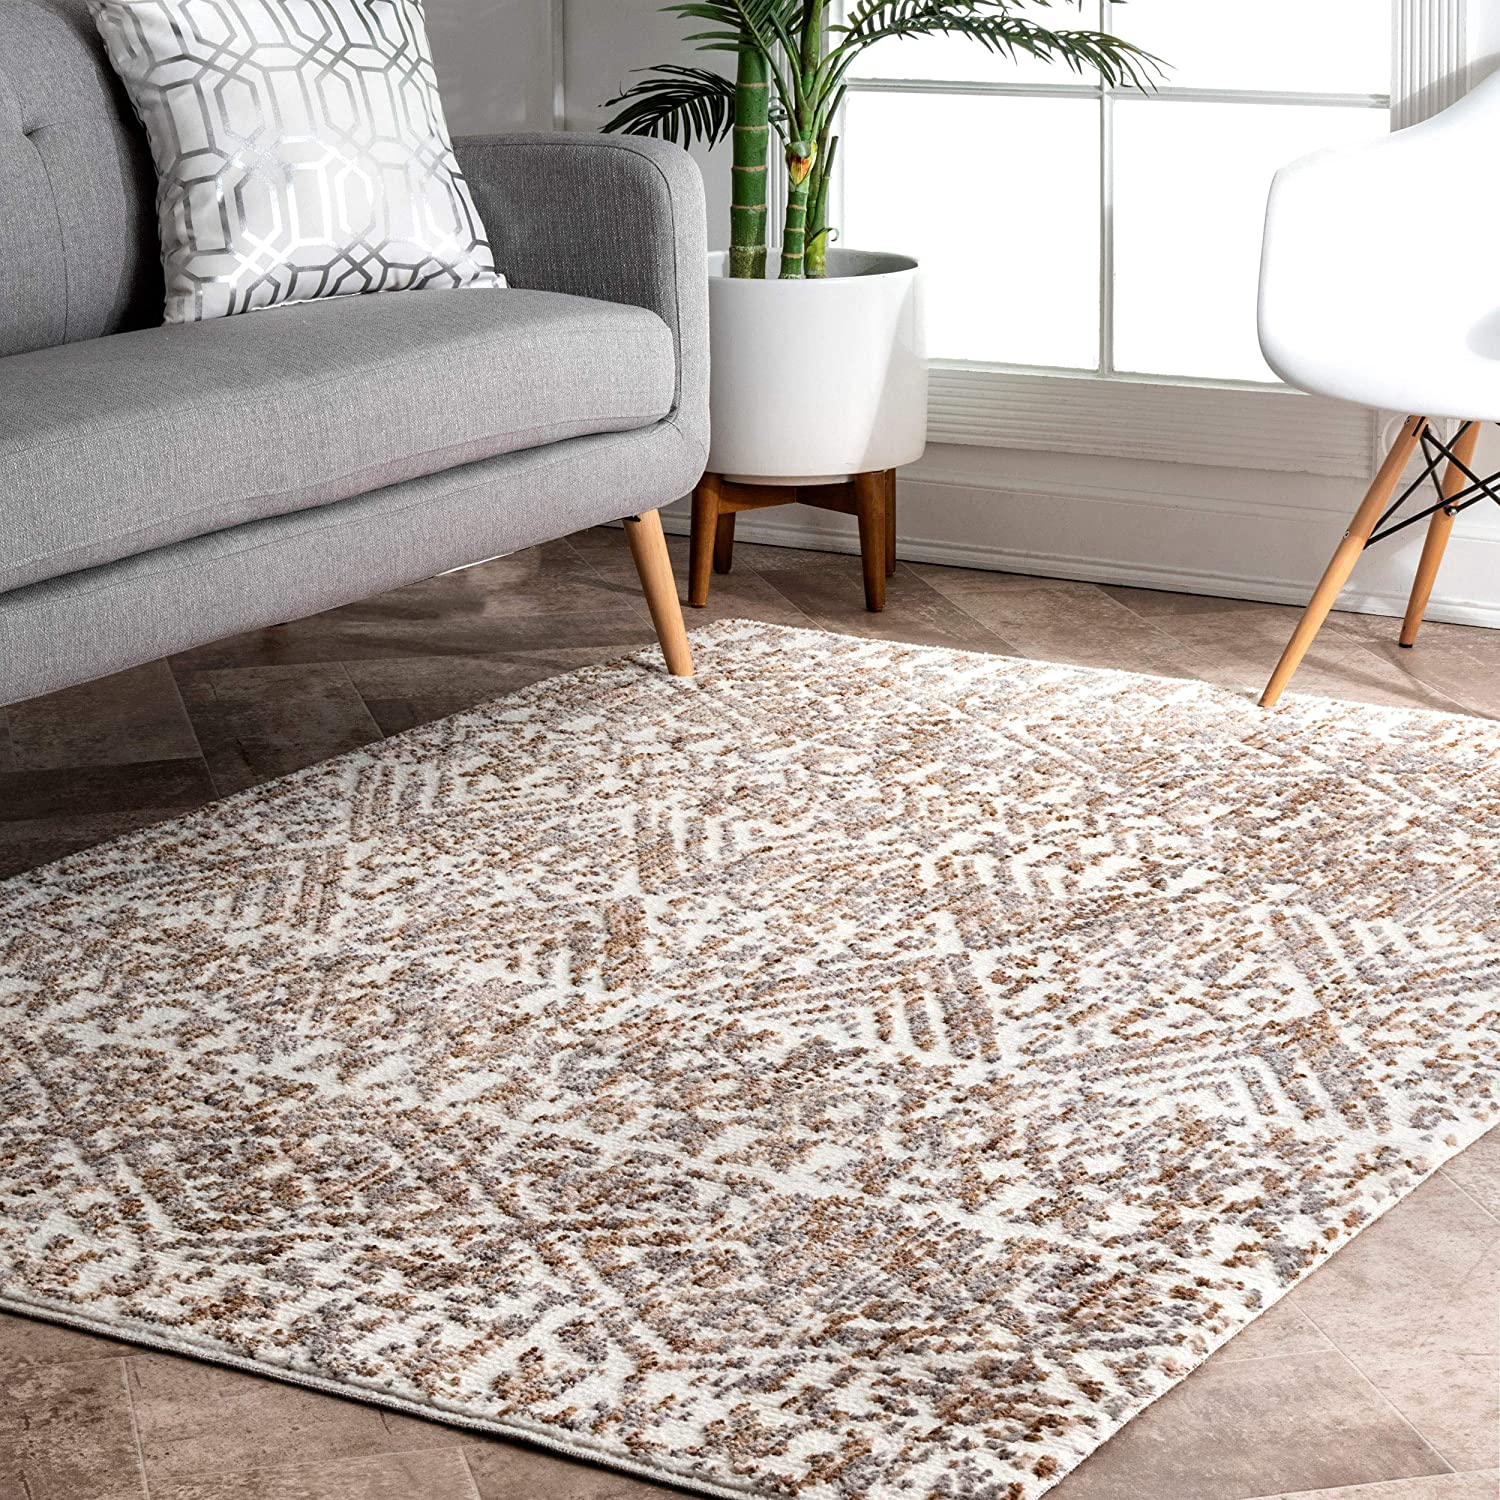 nuLOOM Max 65% OFF Roxanne Tribal Area Rug Popular brand in the world 6' Beige 4' x